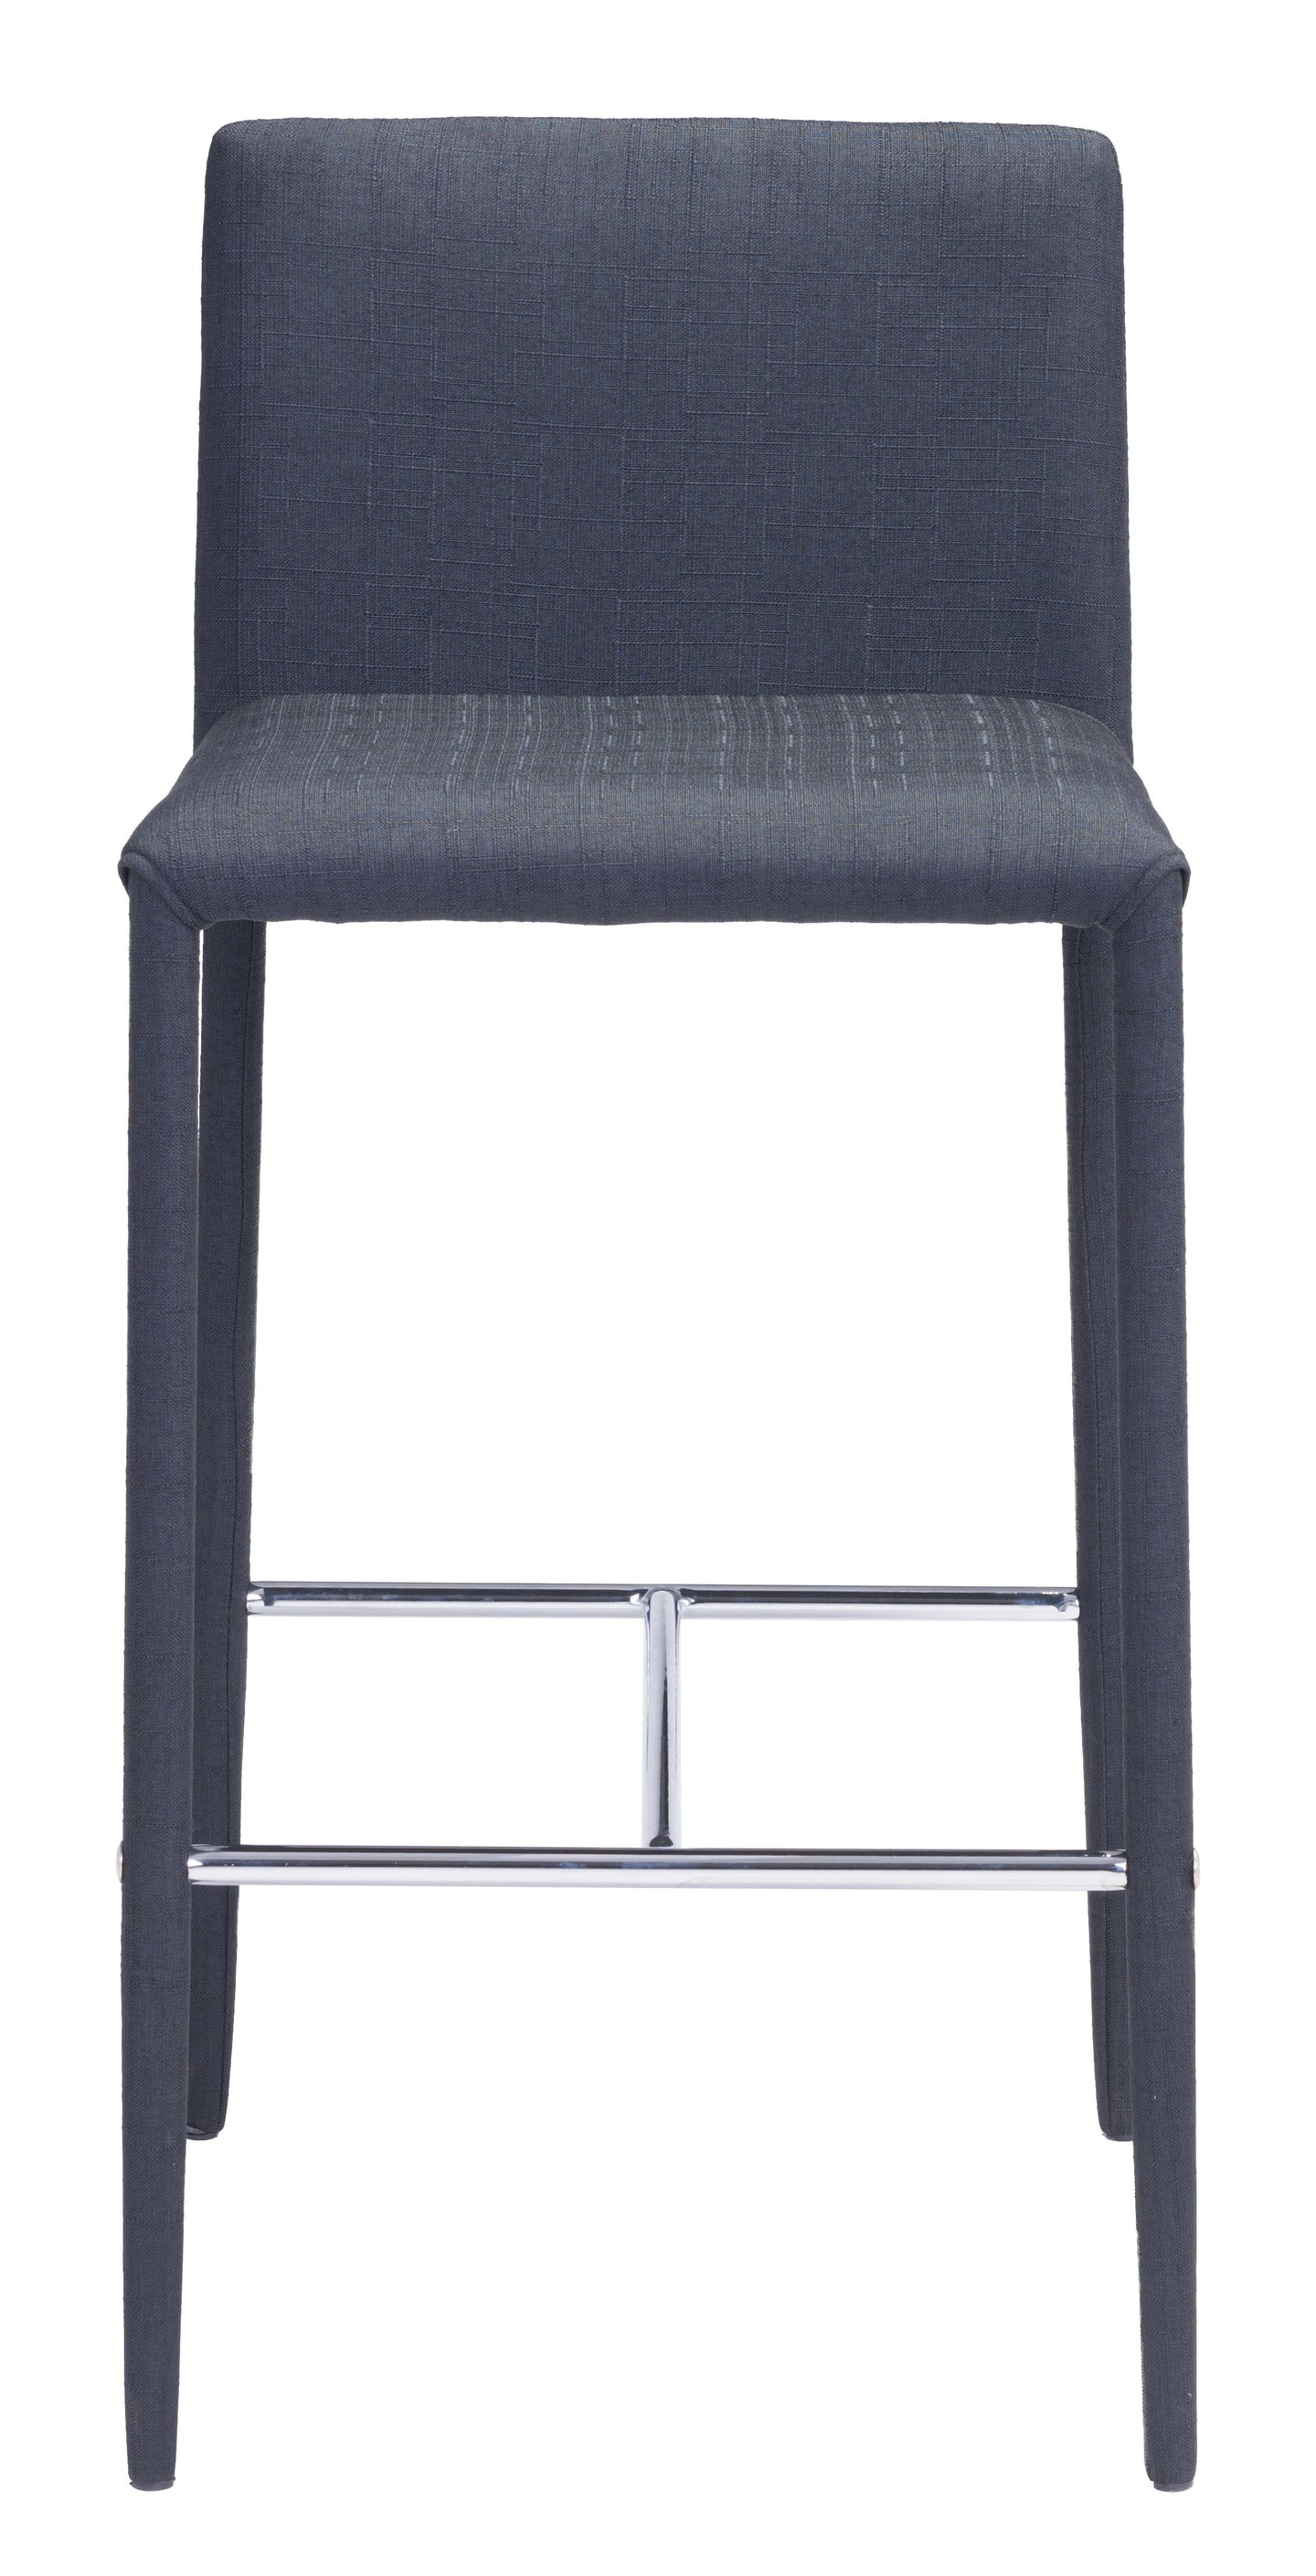 Confidence Counter Chair Black - Bar